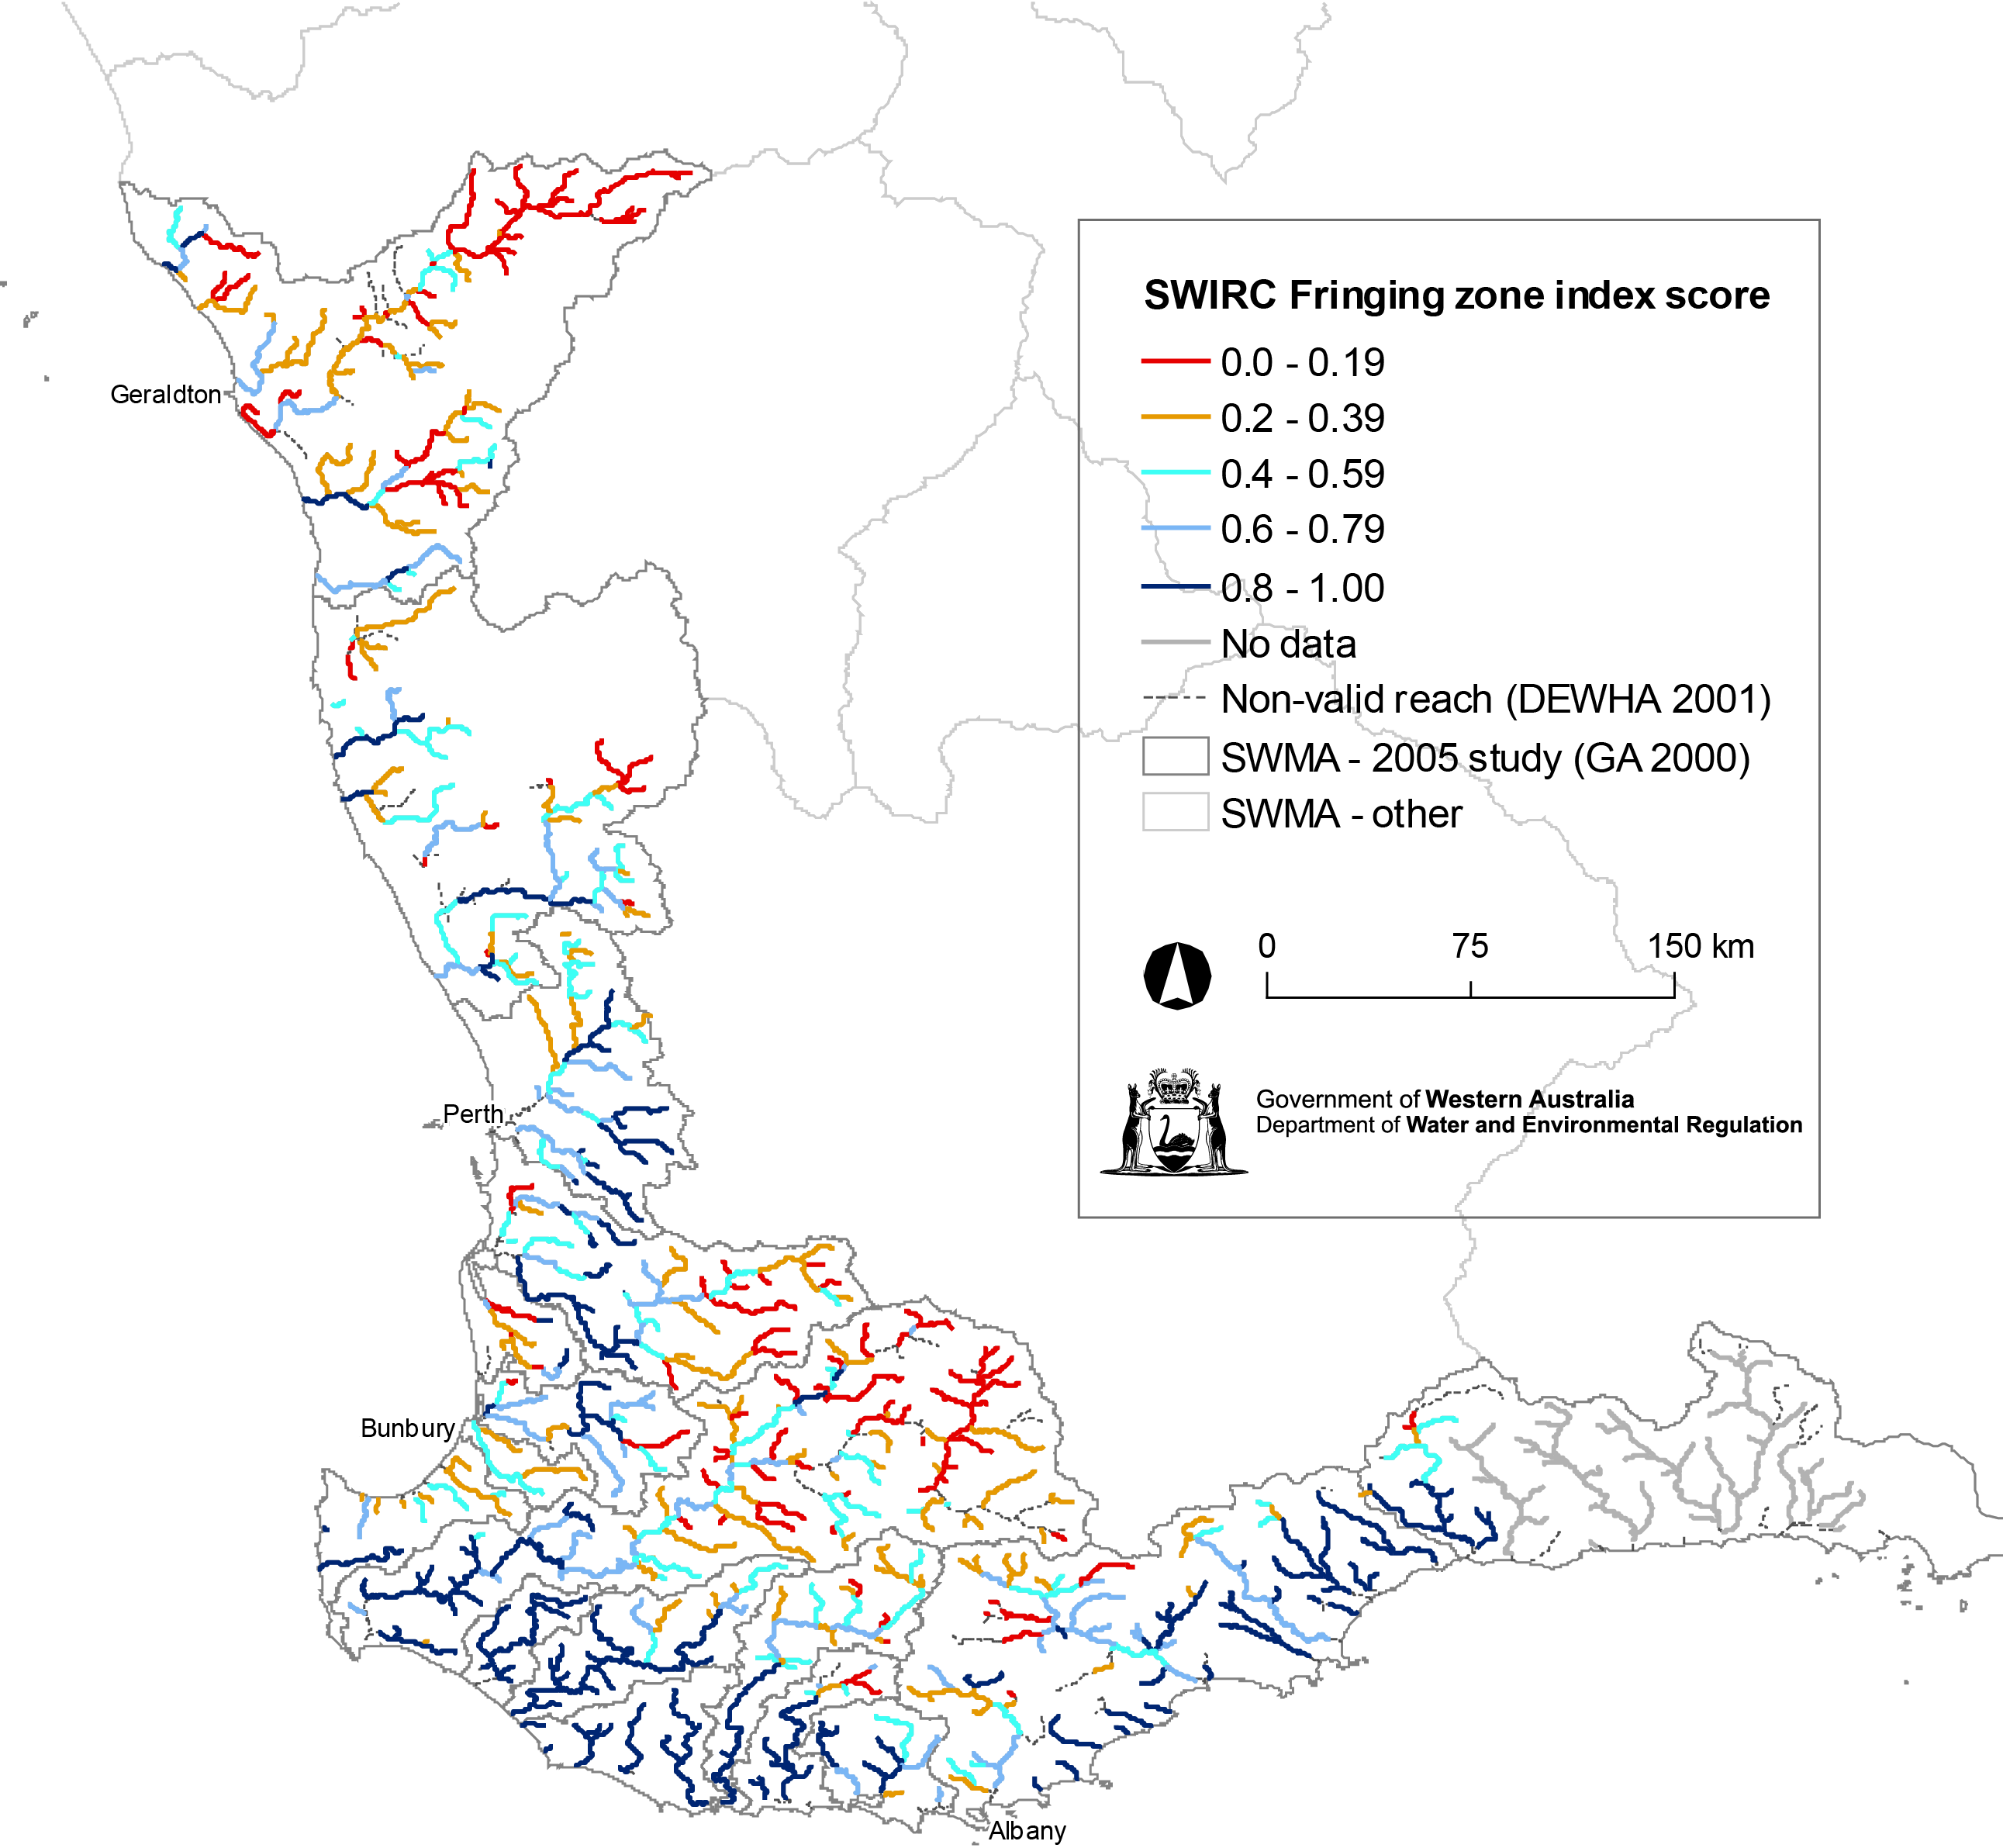 Index of River Condition